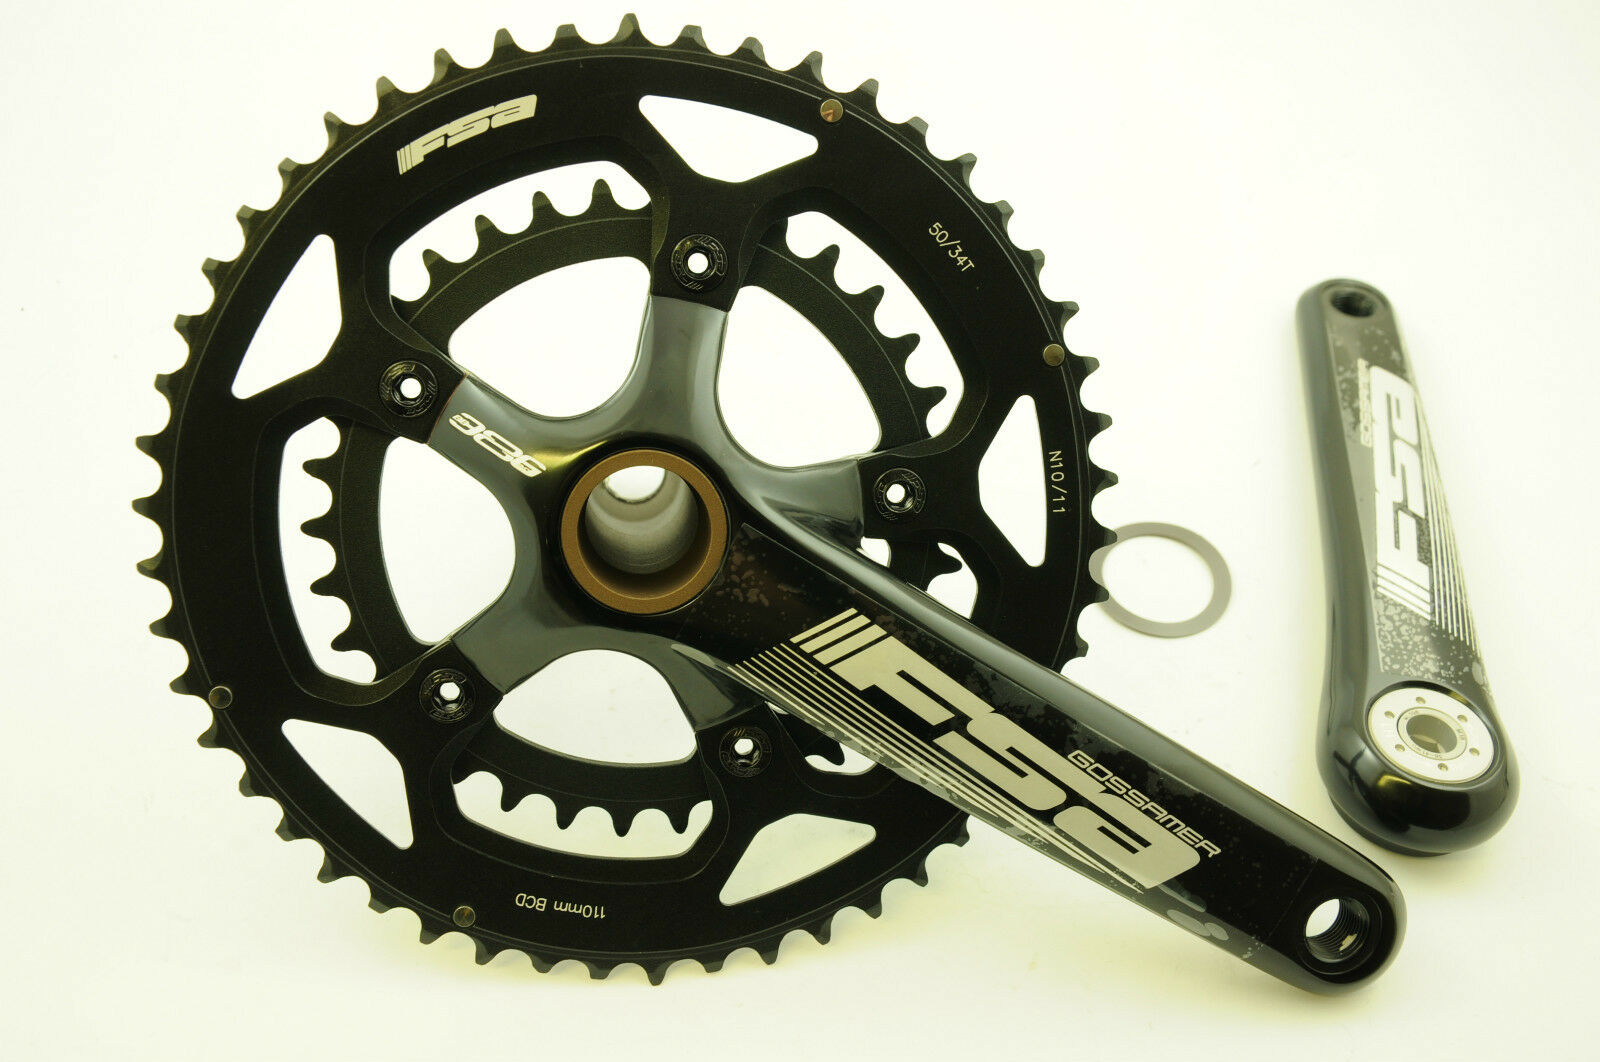 FSA GOSSAMER BB386 EVO COMPACT DOUBLE CHAINWHEEL CHAINSET 50 34 172.5mm 50% OFF